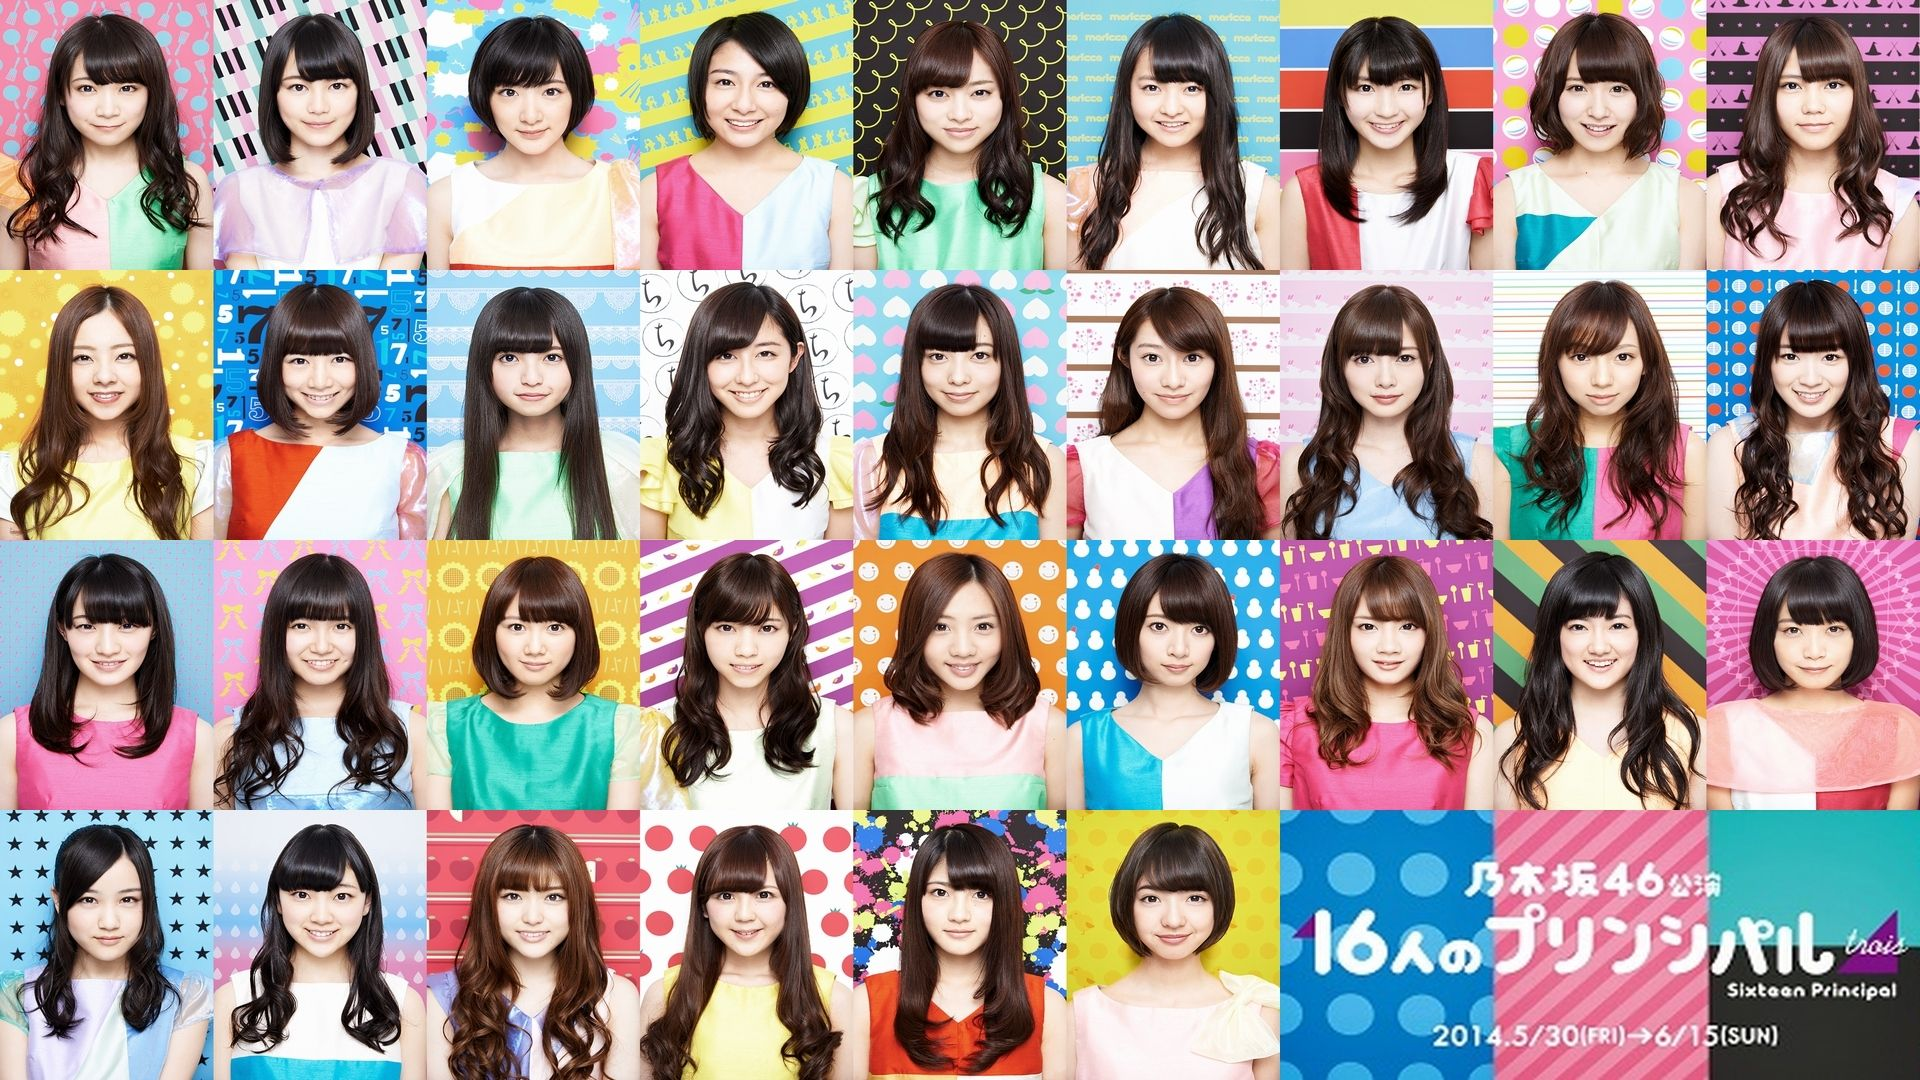 nogizaka46 wallpapers wallpaper cave nogizaka46 wallpapers wallpaper cave